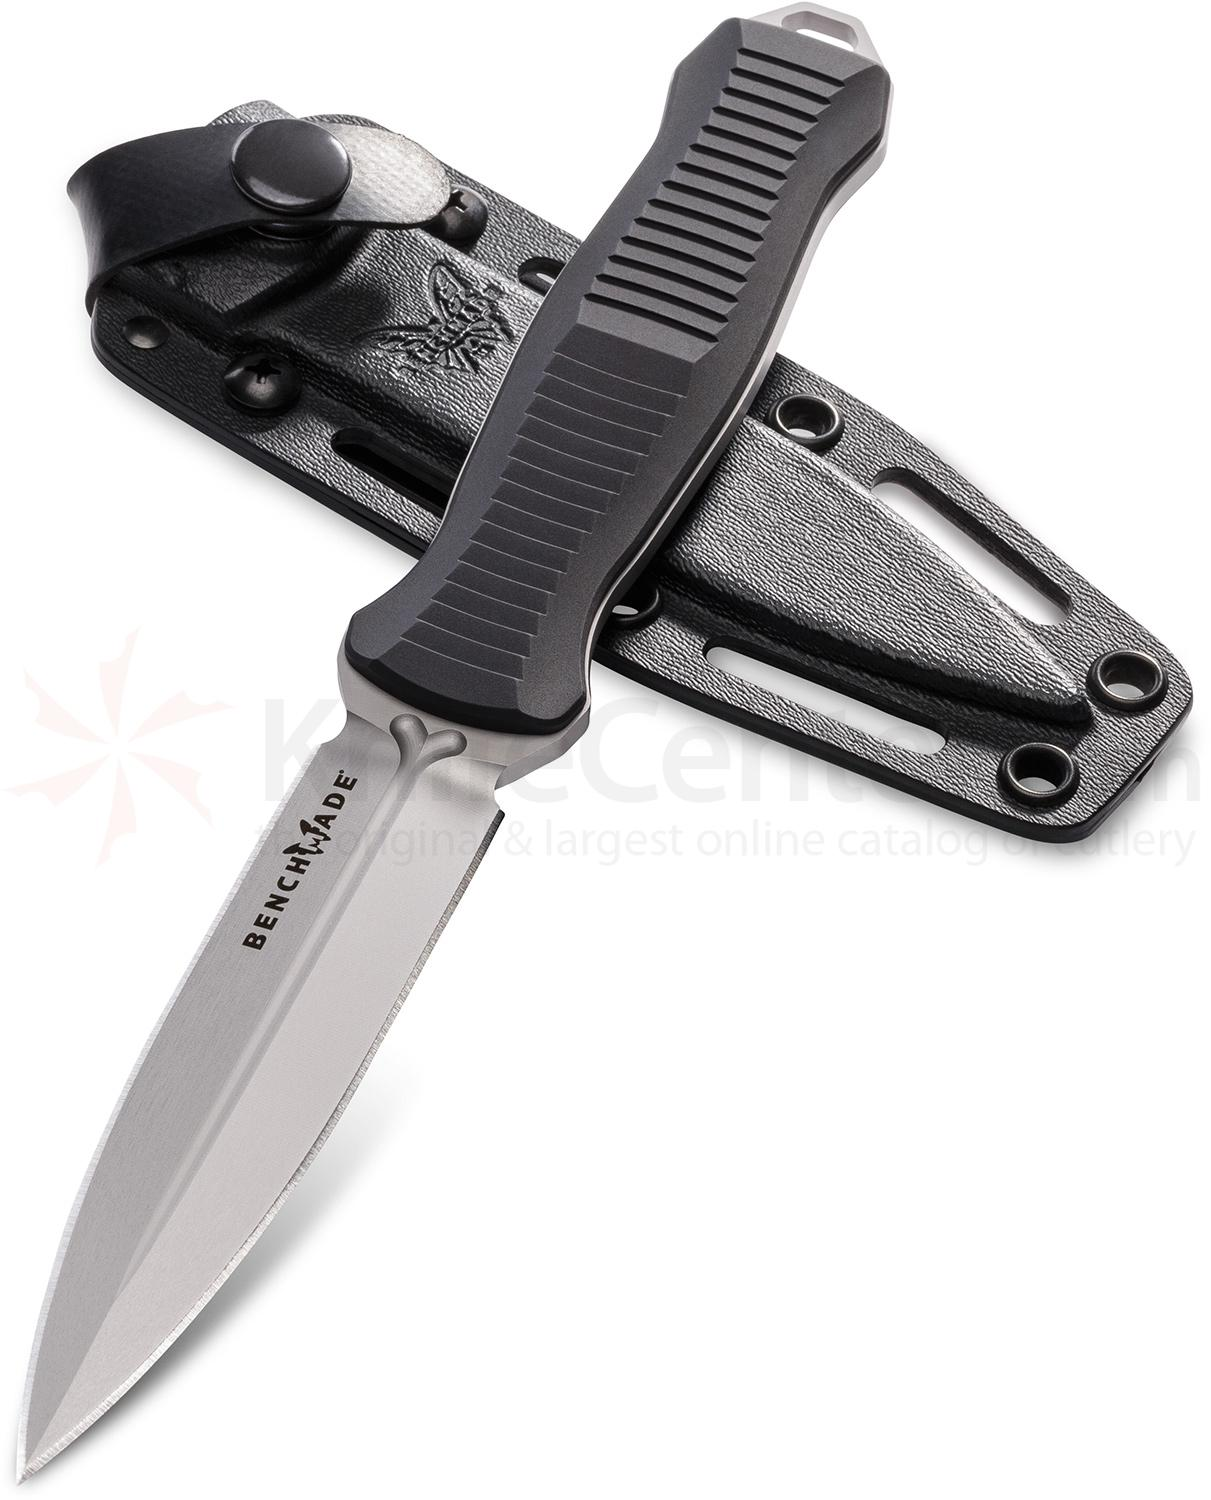 Benchmade 133 Fixed Infidel 4.52 inch D2 Satin Double Edge Dagger Blade, Black Aluminum Handles, Boltaron Sheath